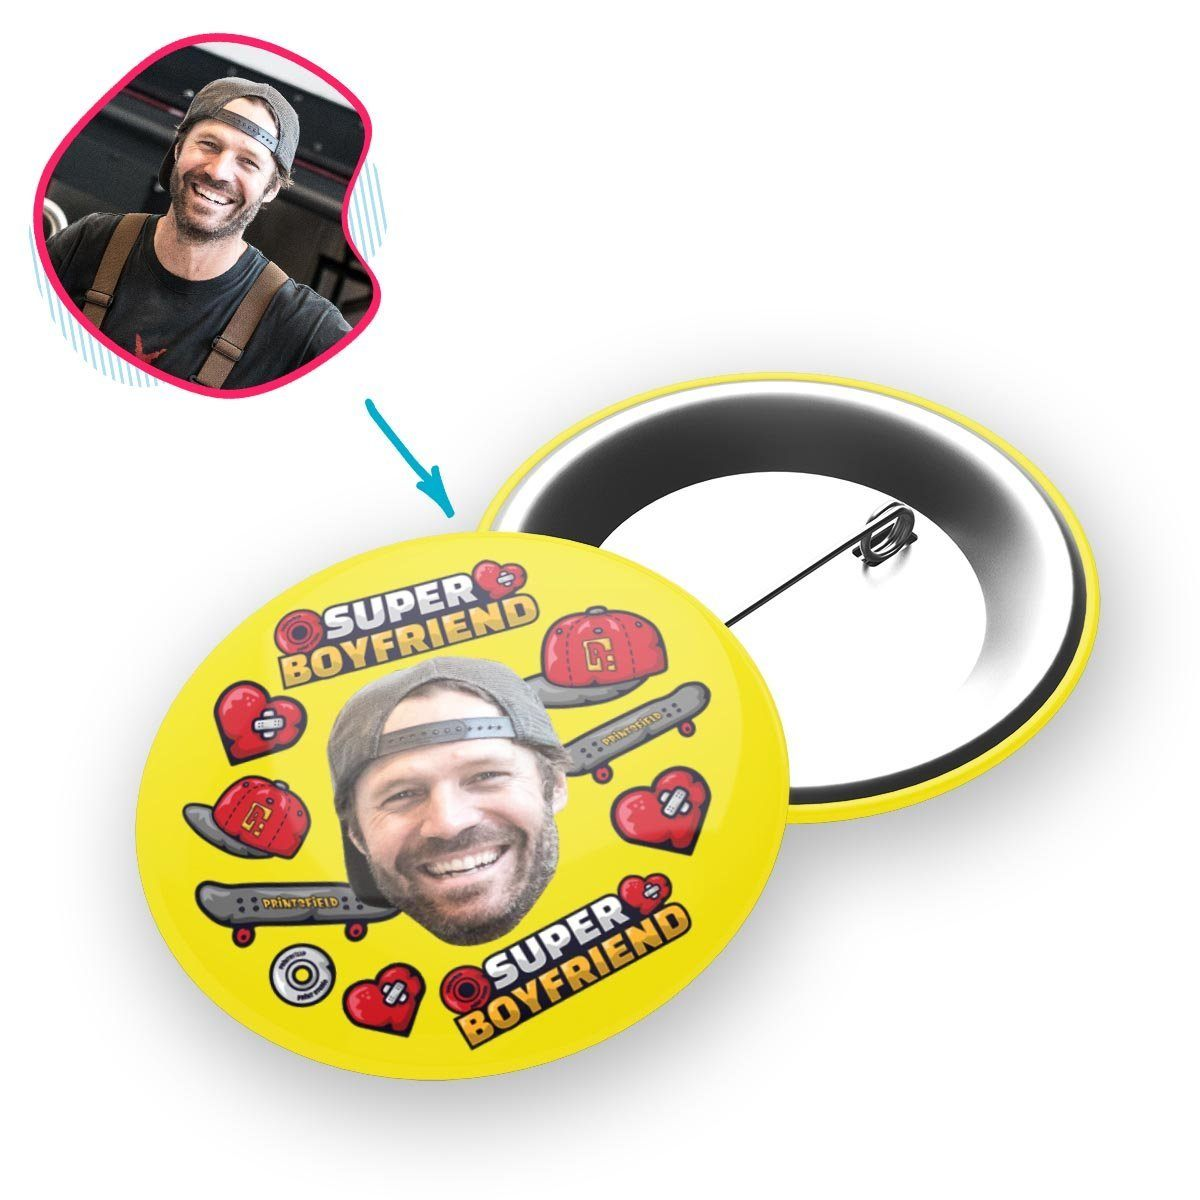 Yellow Boyfriend personalized pin with photo of face printed on it